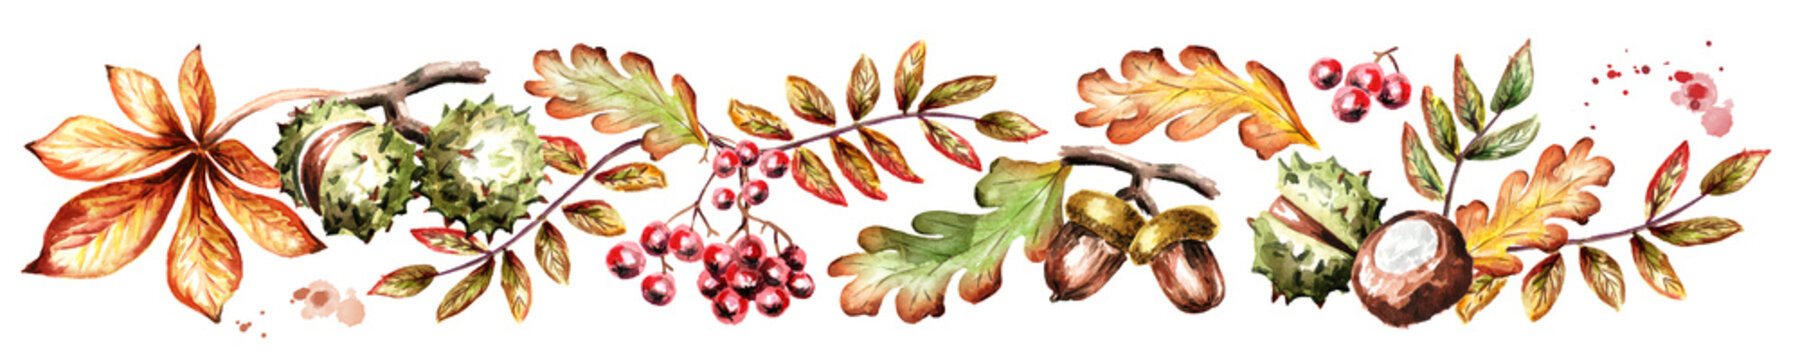 Colors of autumn horizontal. Watercolor hand-drawn illustration